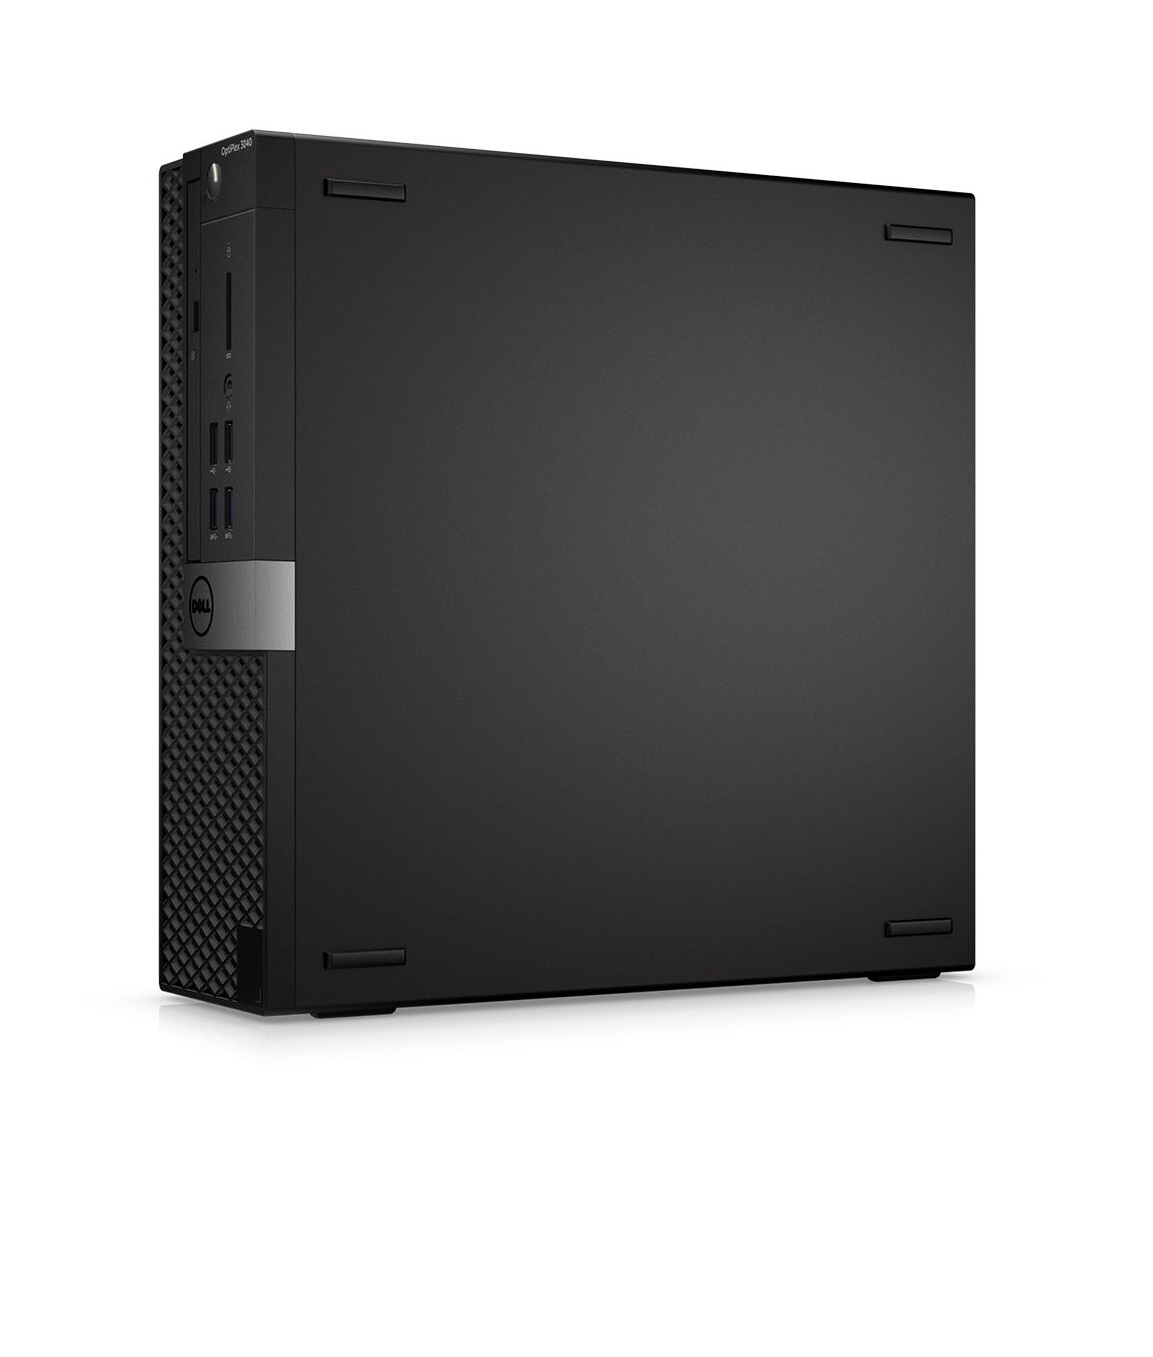 DELL 3040 3.3GHz G4400 SFF Nero PC